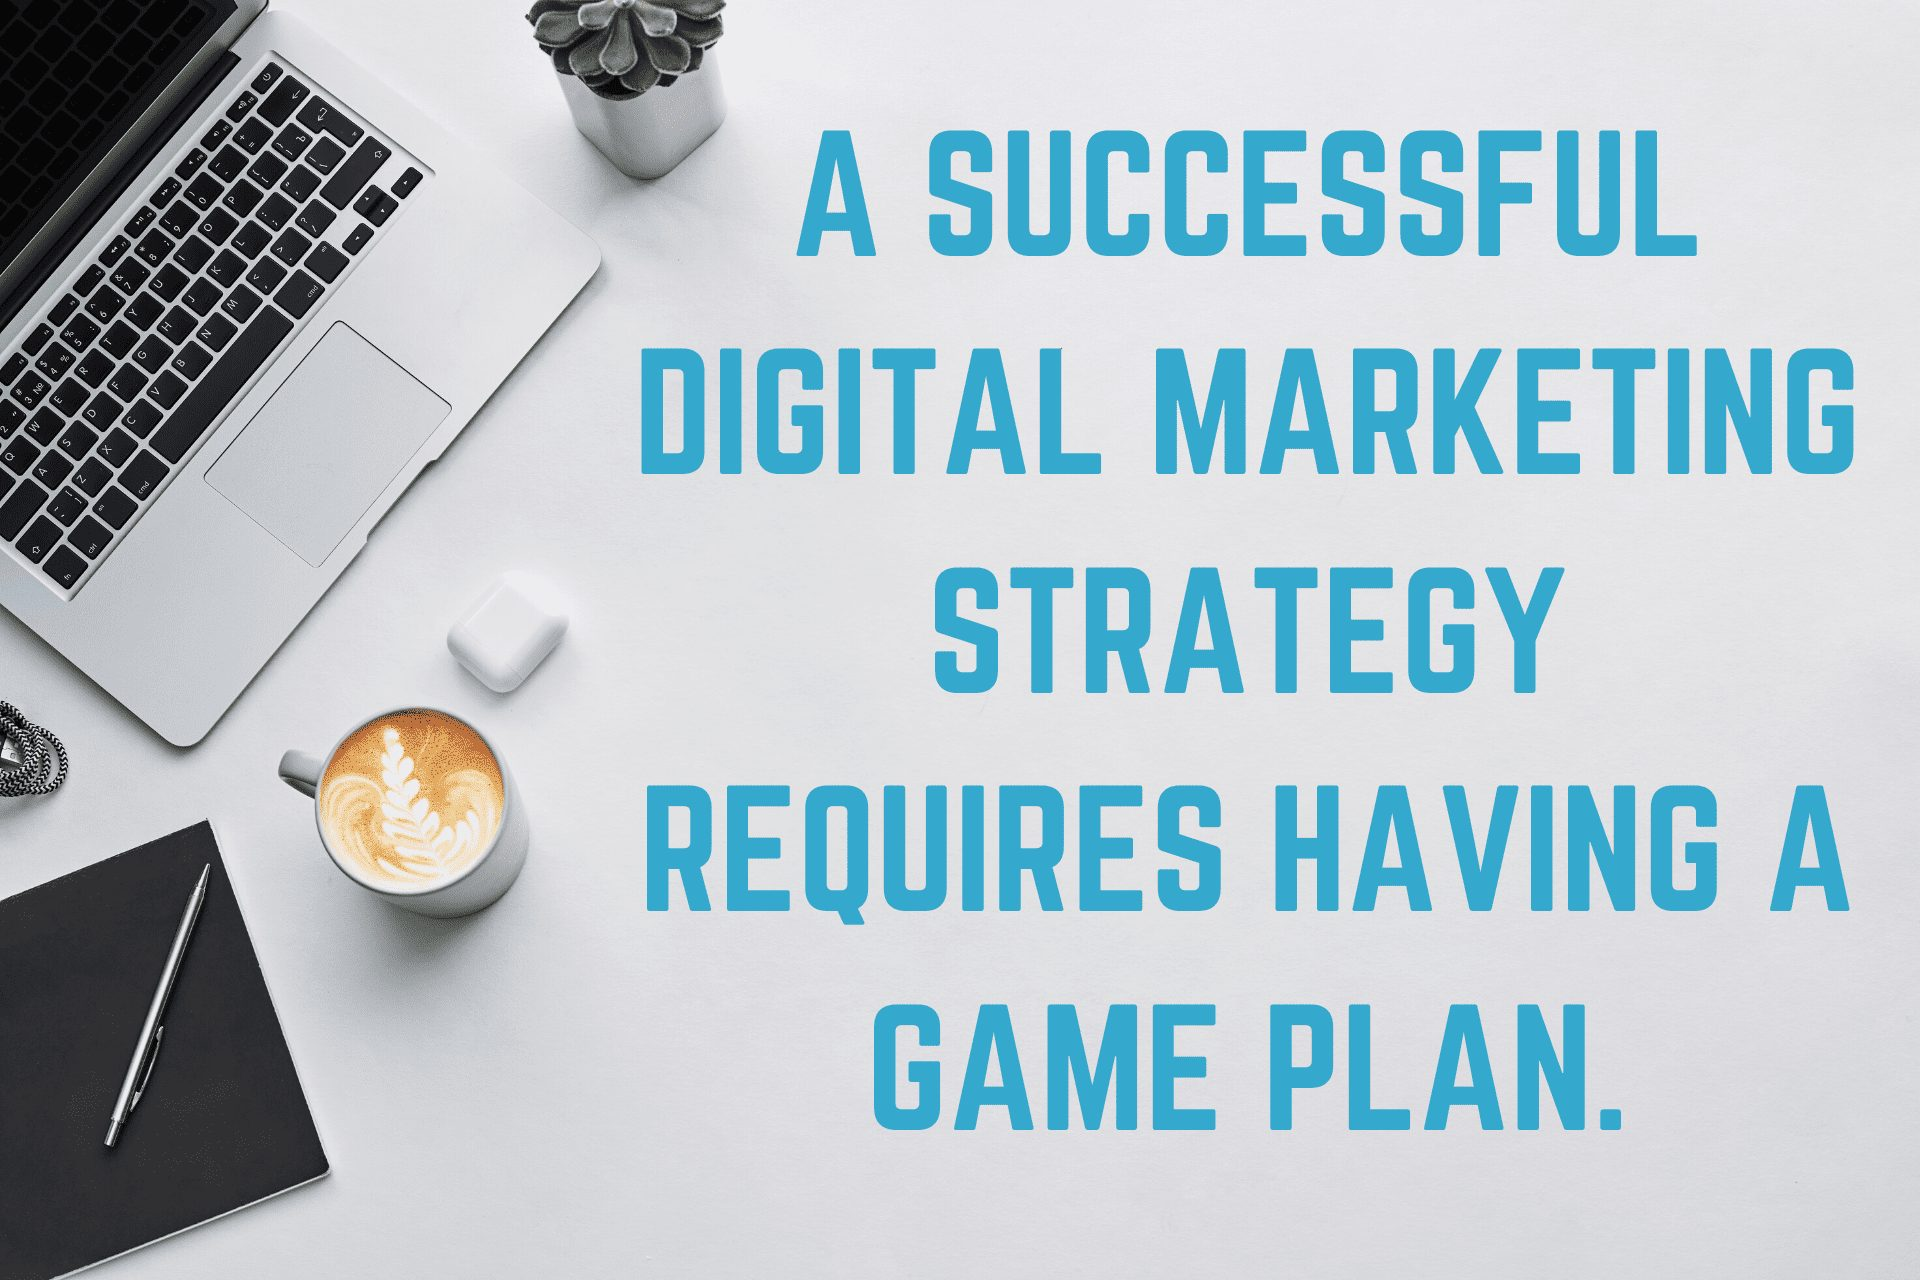 Image on having a digital marketing strategy